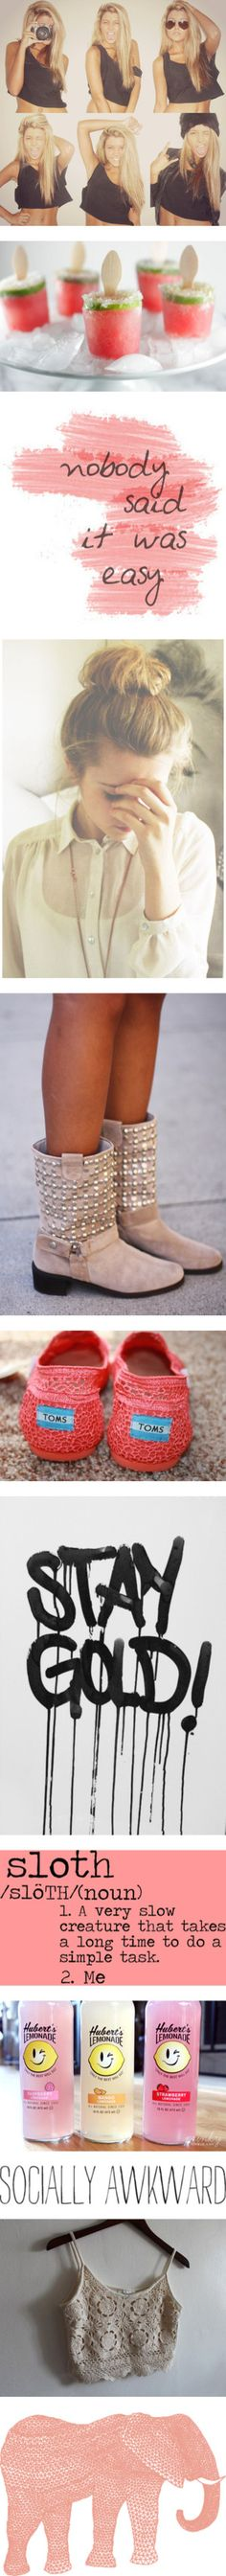 """""""♡ gracie's gonna take some items ♡"""" by sambecker ❤ liked on Polyvore"""